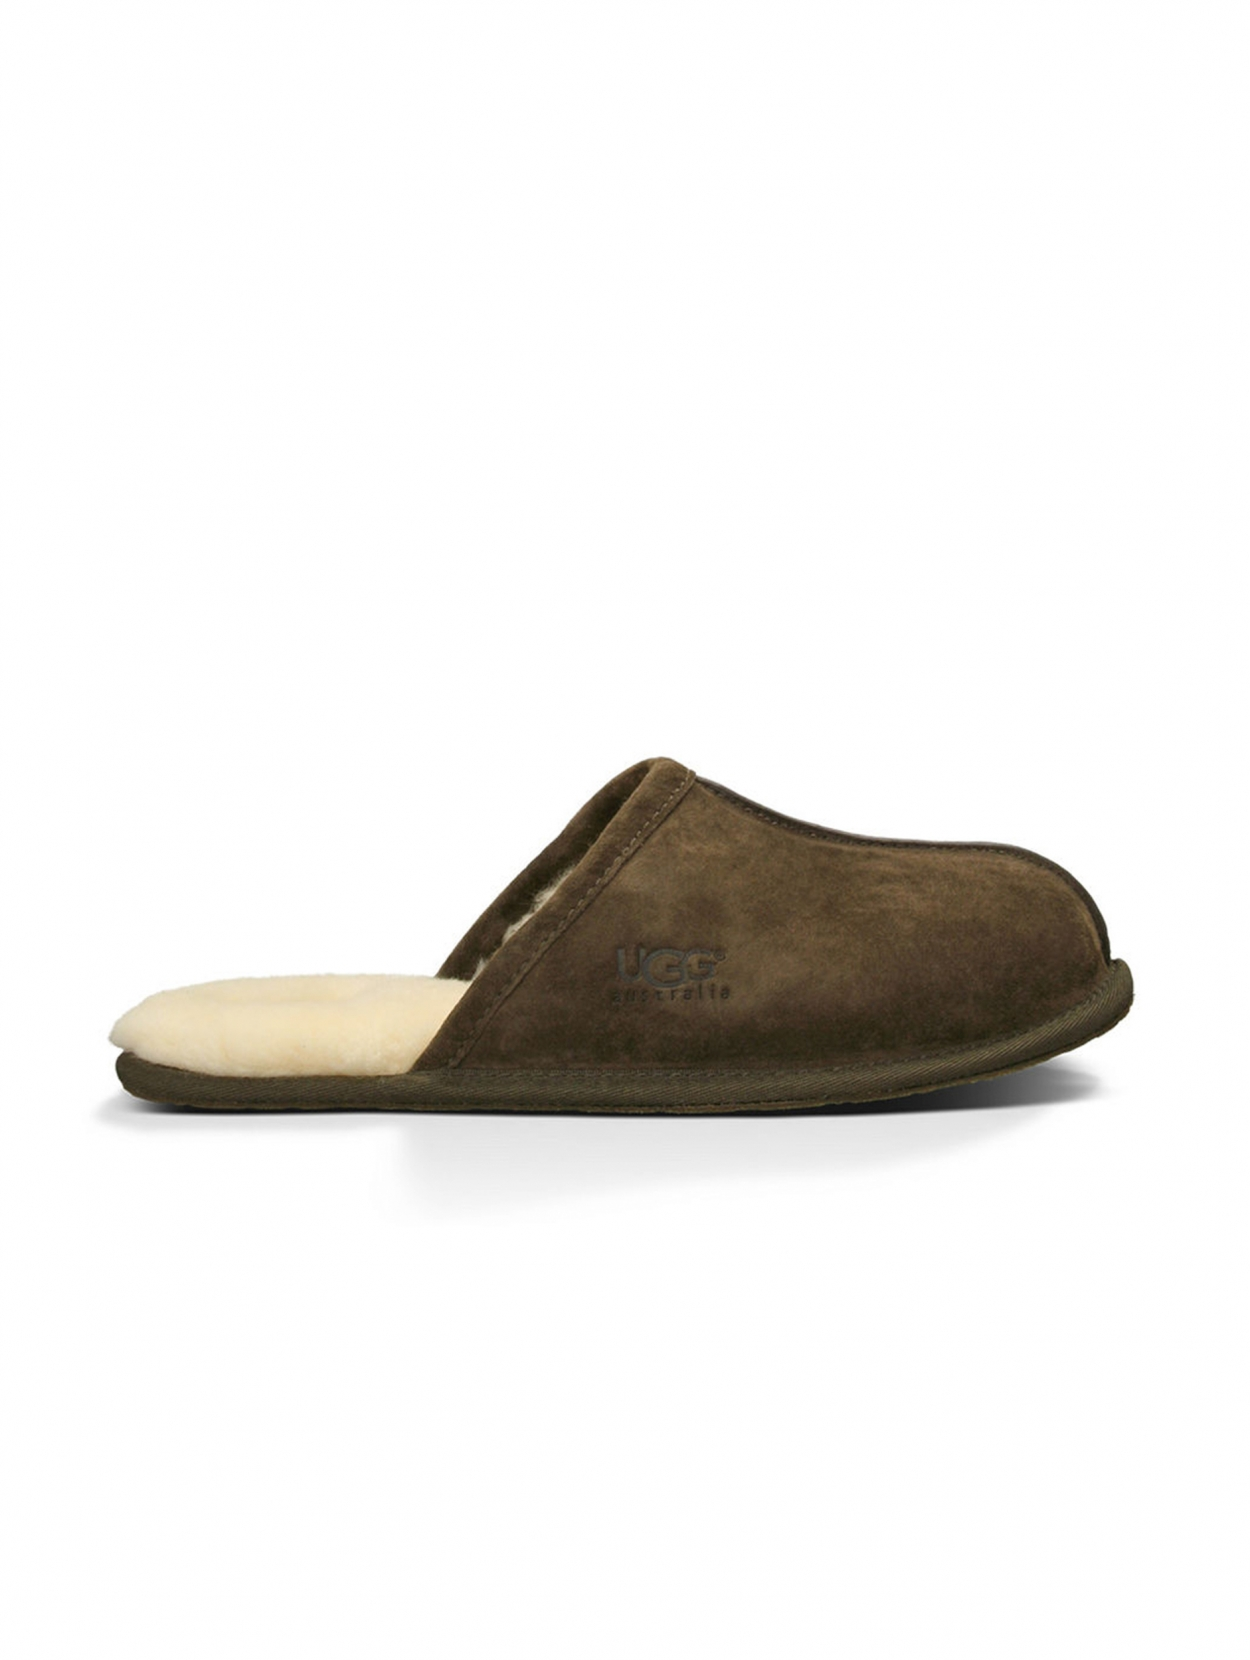 3aaa.ml: uggs for men. of results for